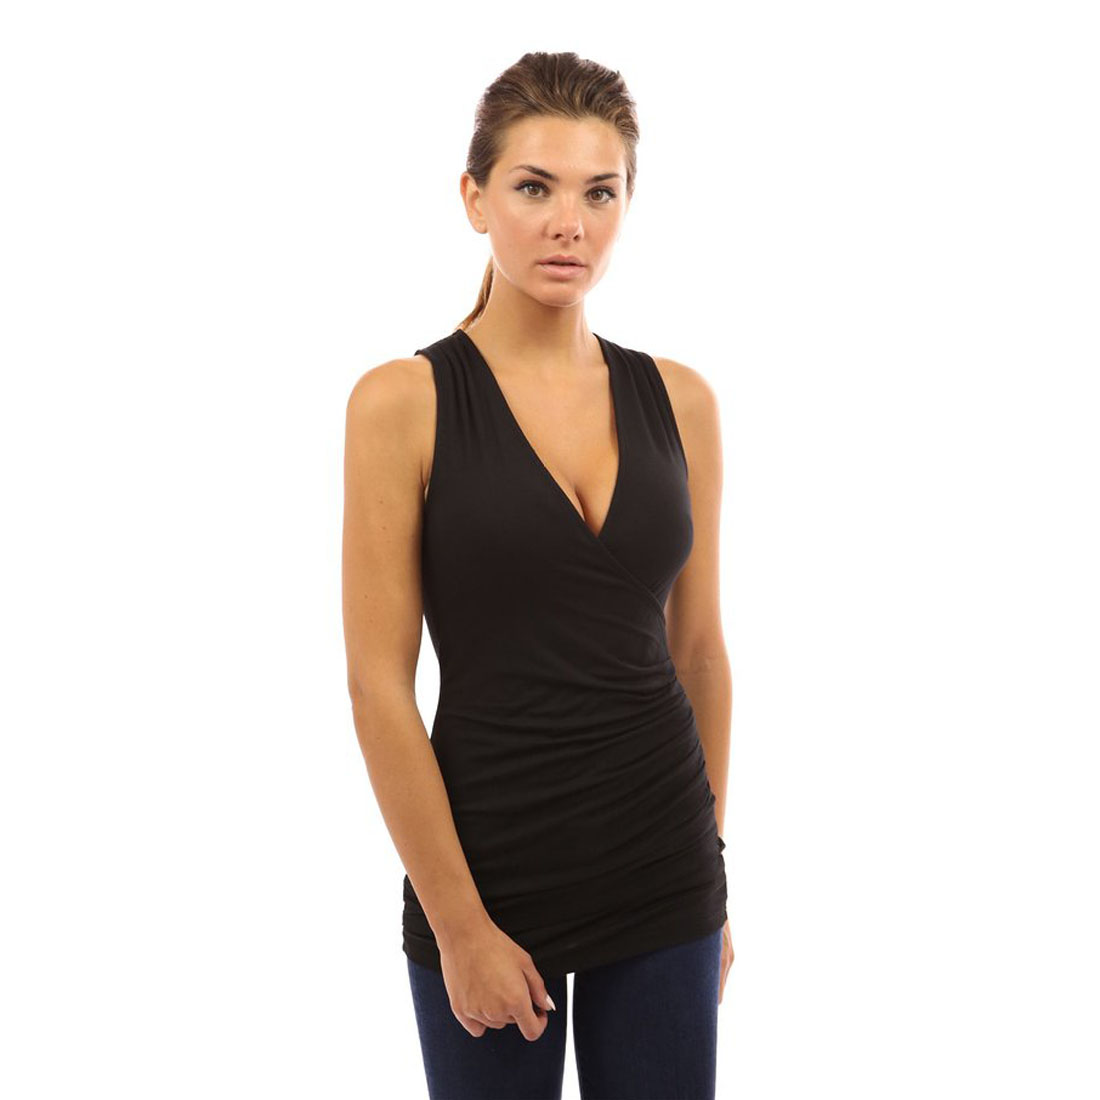 Find great deals on eBay for party tops for women. Shop with confidence.